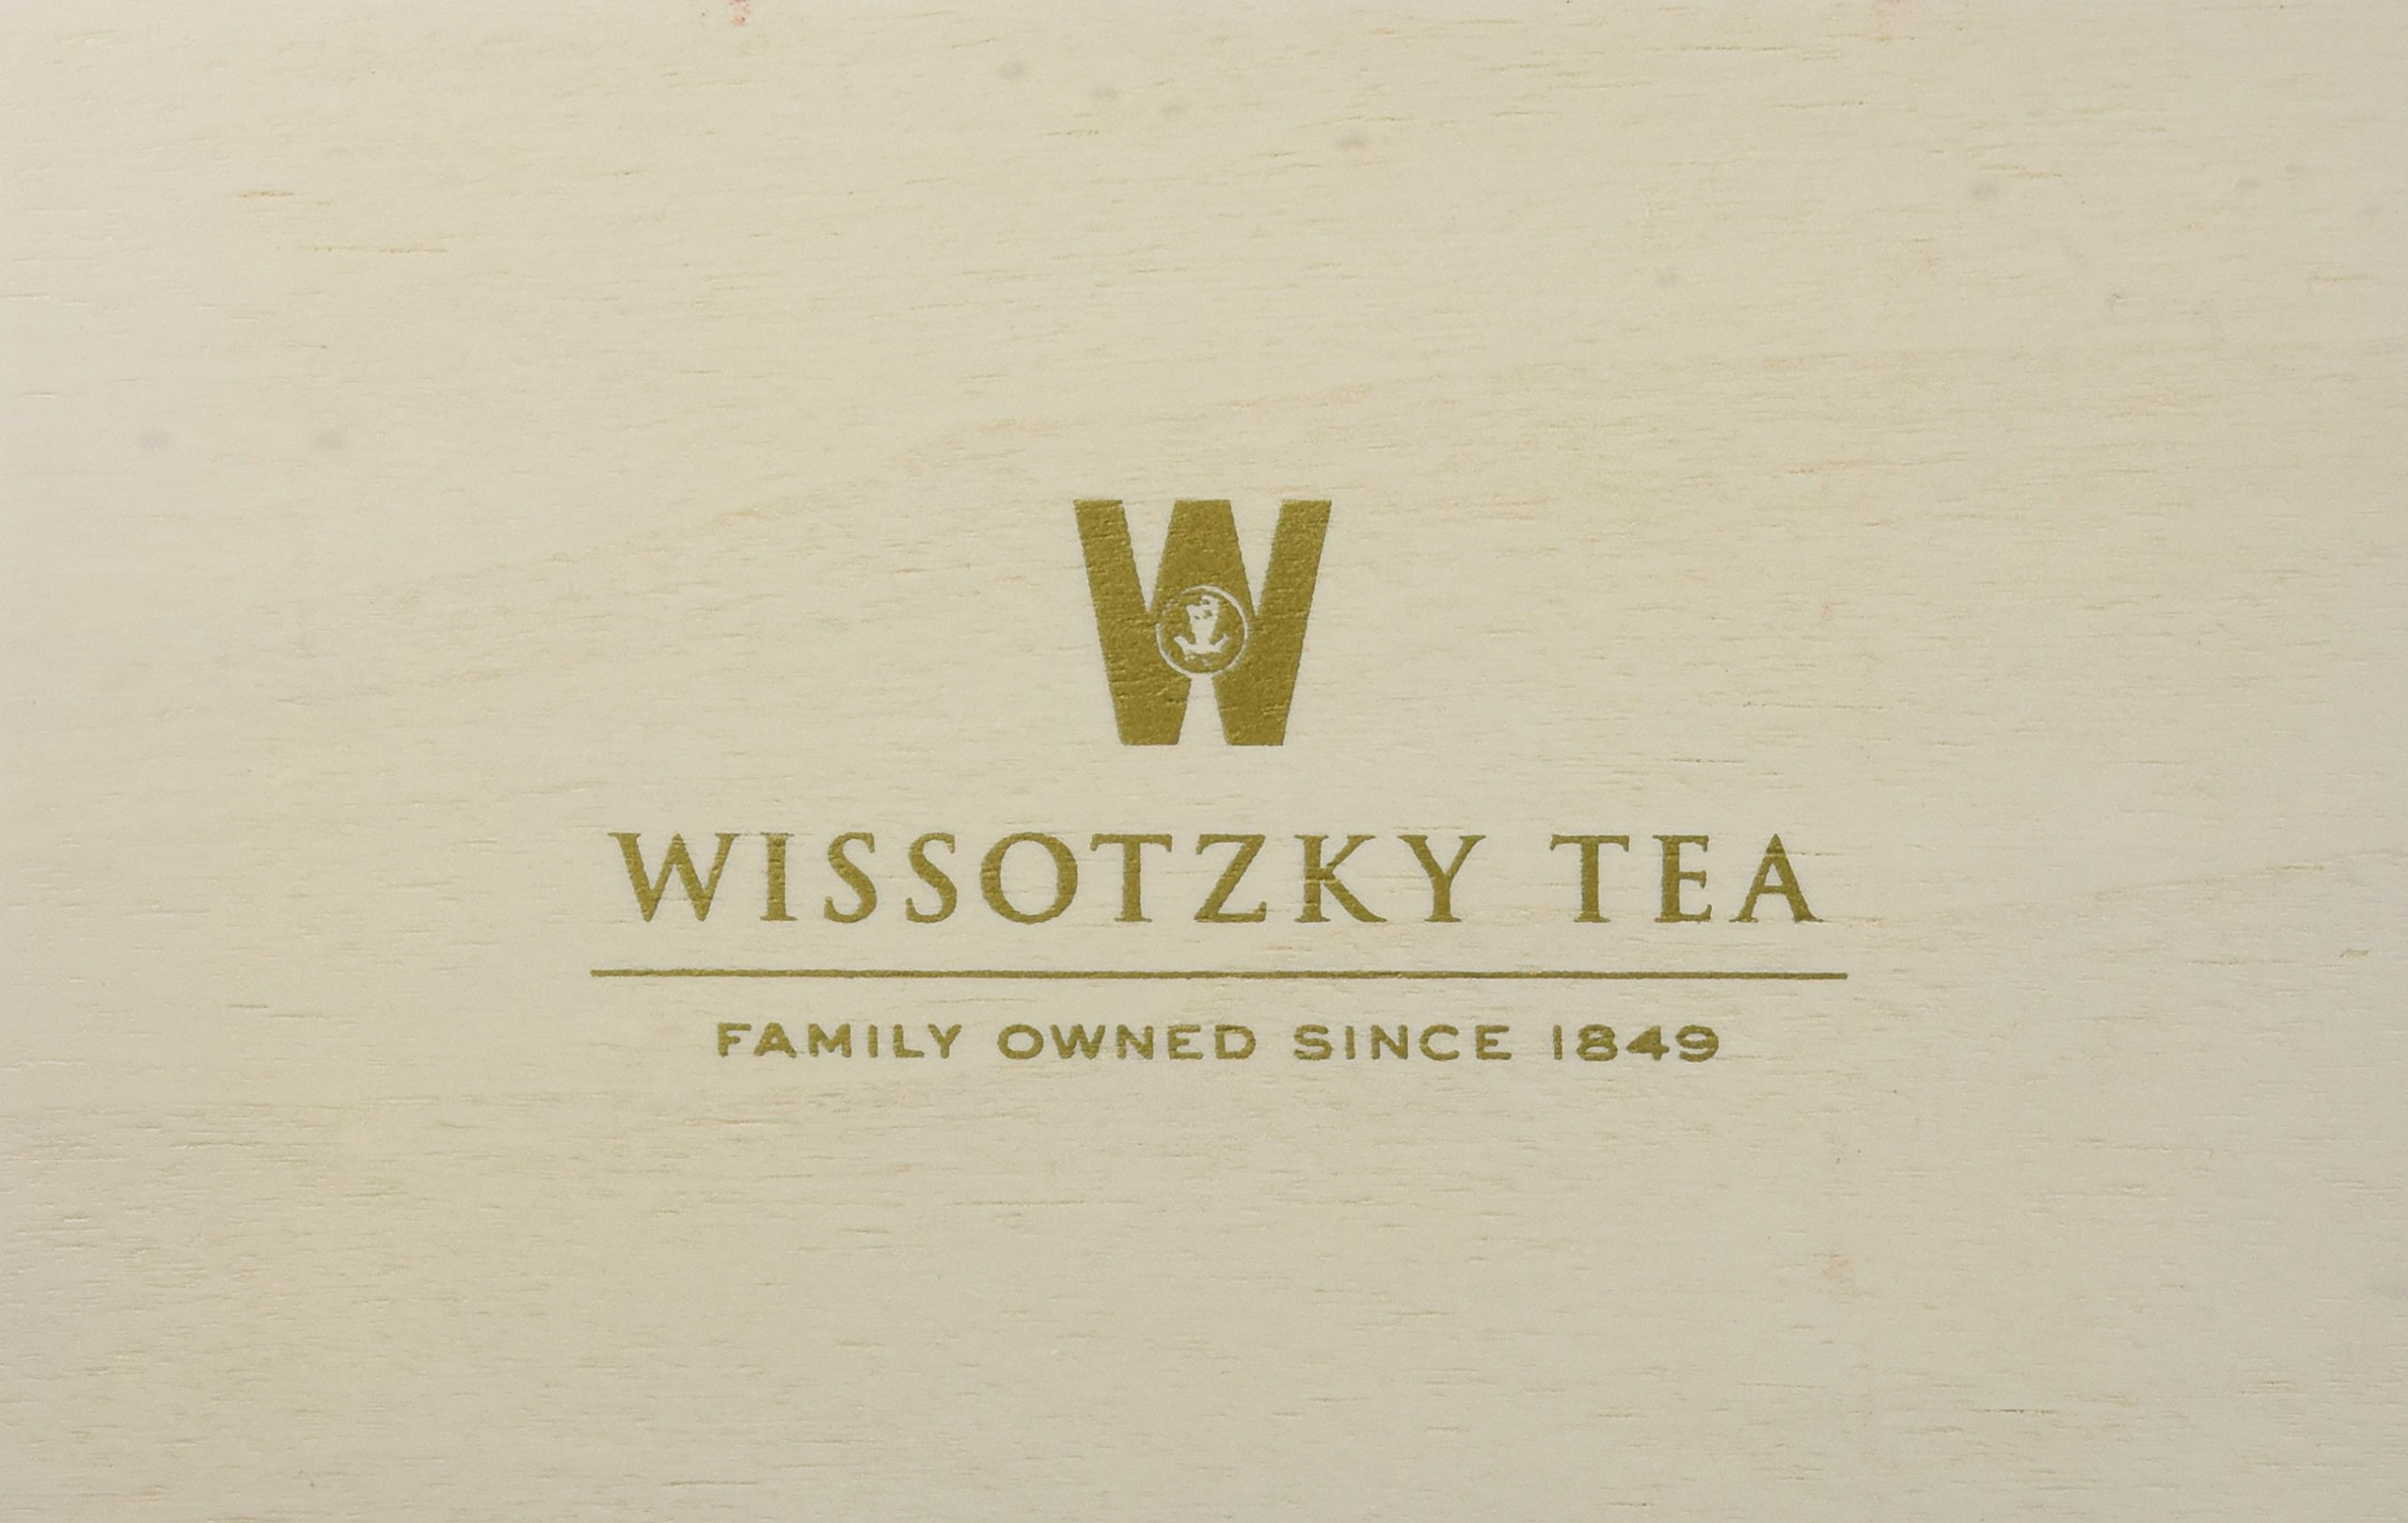 Wissotzky Mini Magic Gift Chest (4 Flavors), 2.09-Ounce Box